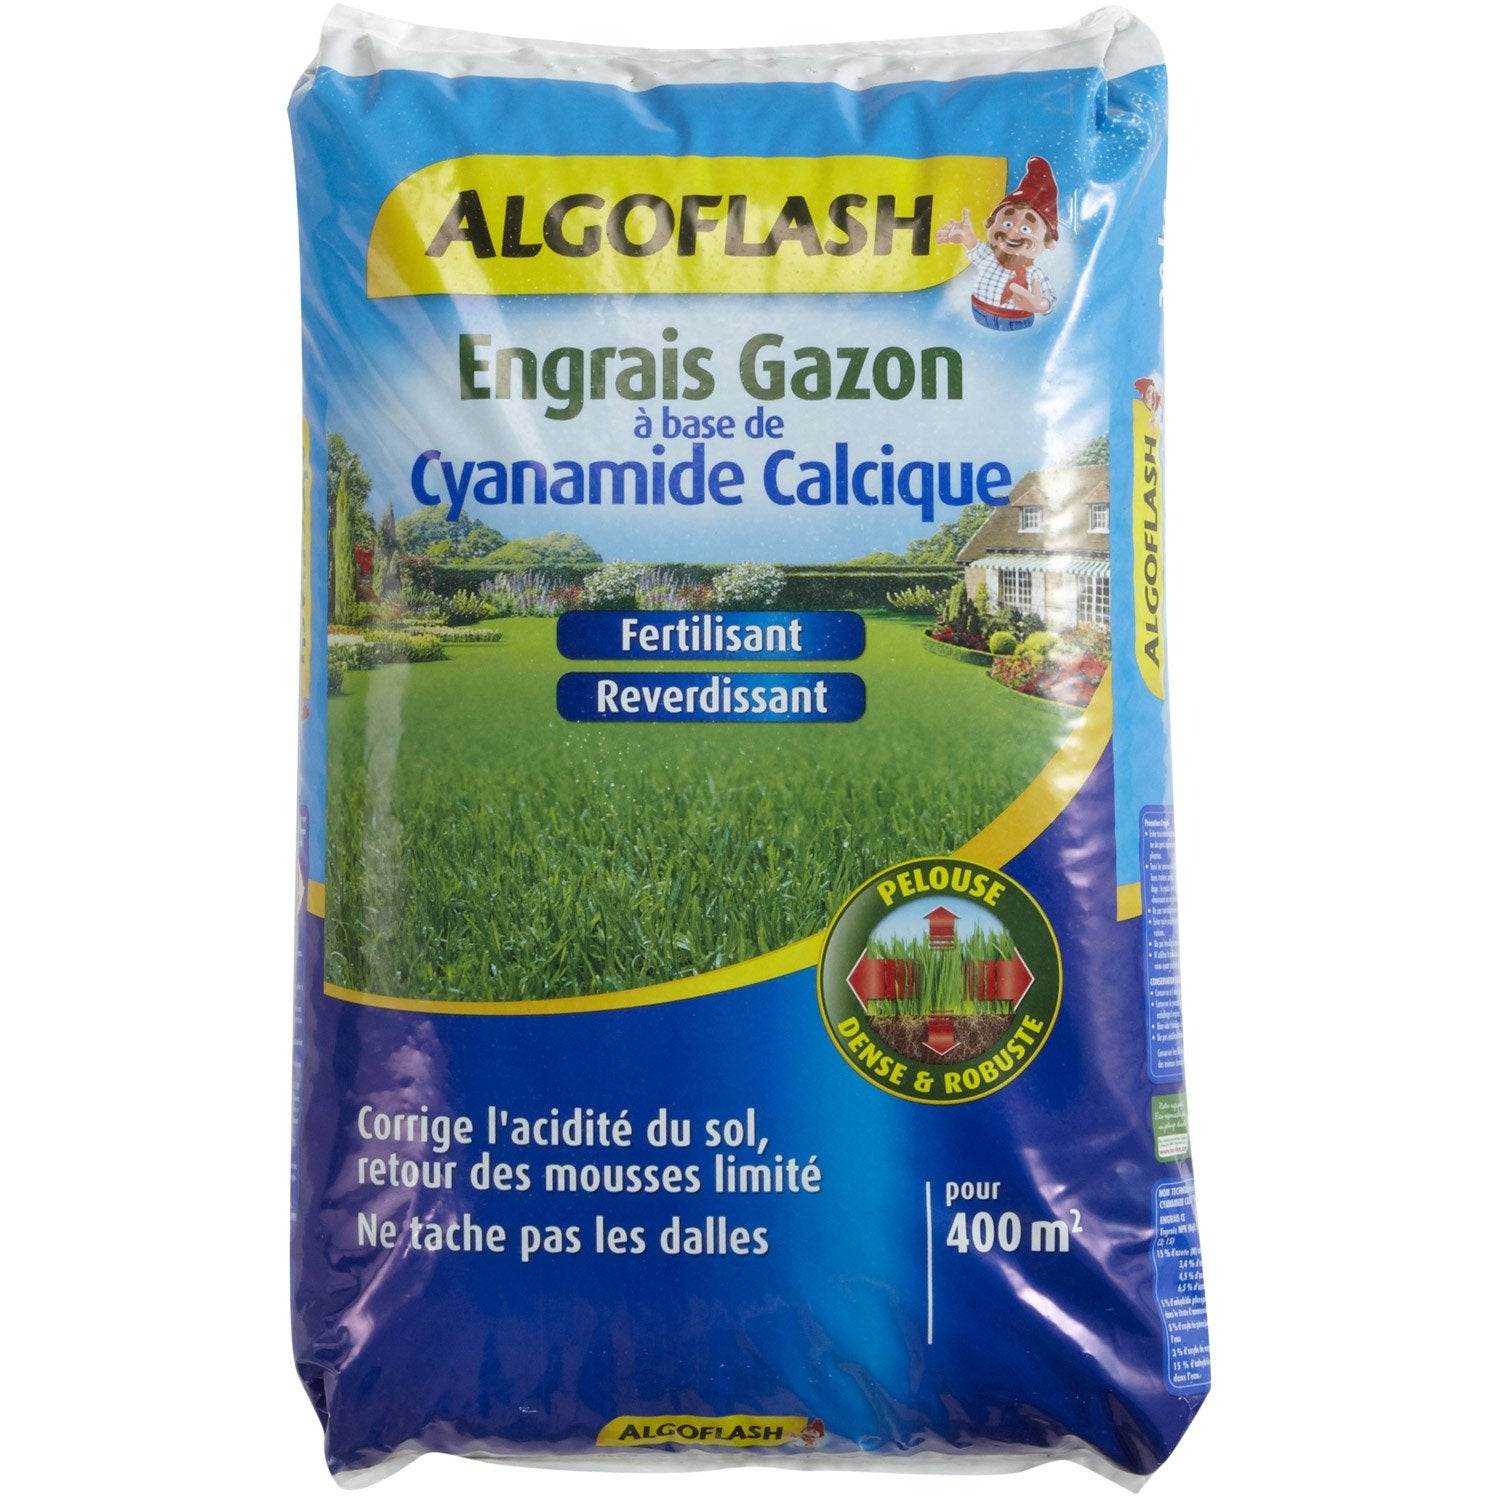 Engrais gazon antimousse algoflash 20 kg 400 m leroy merlin - Produit anti mousse gazon ...